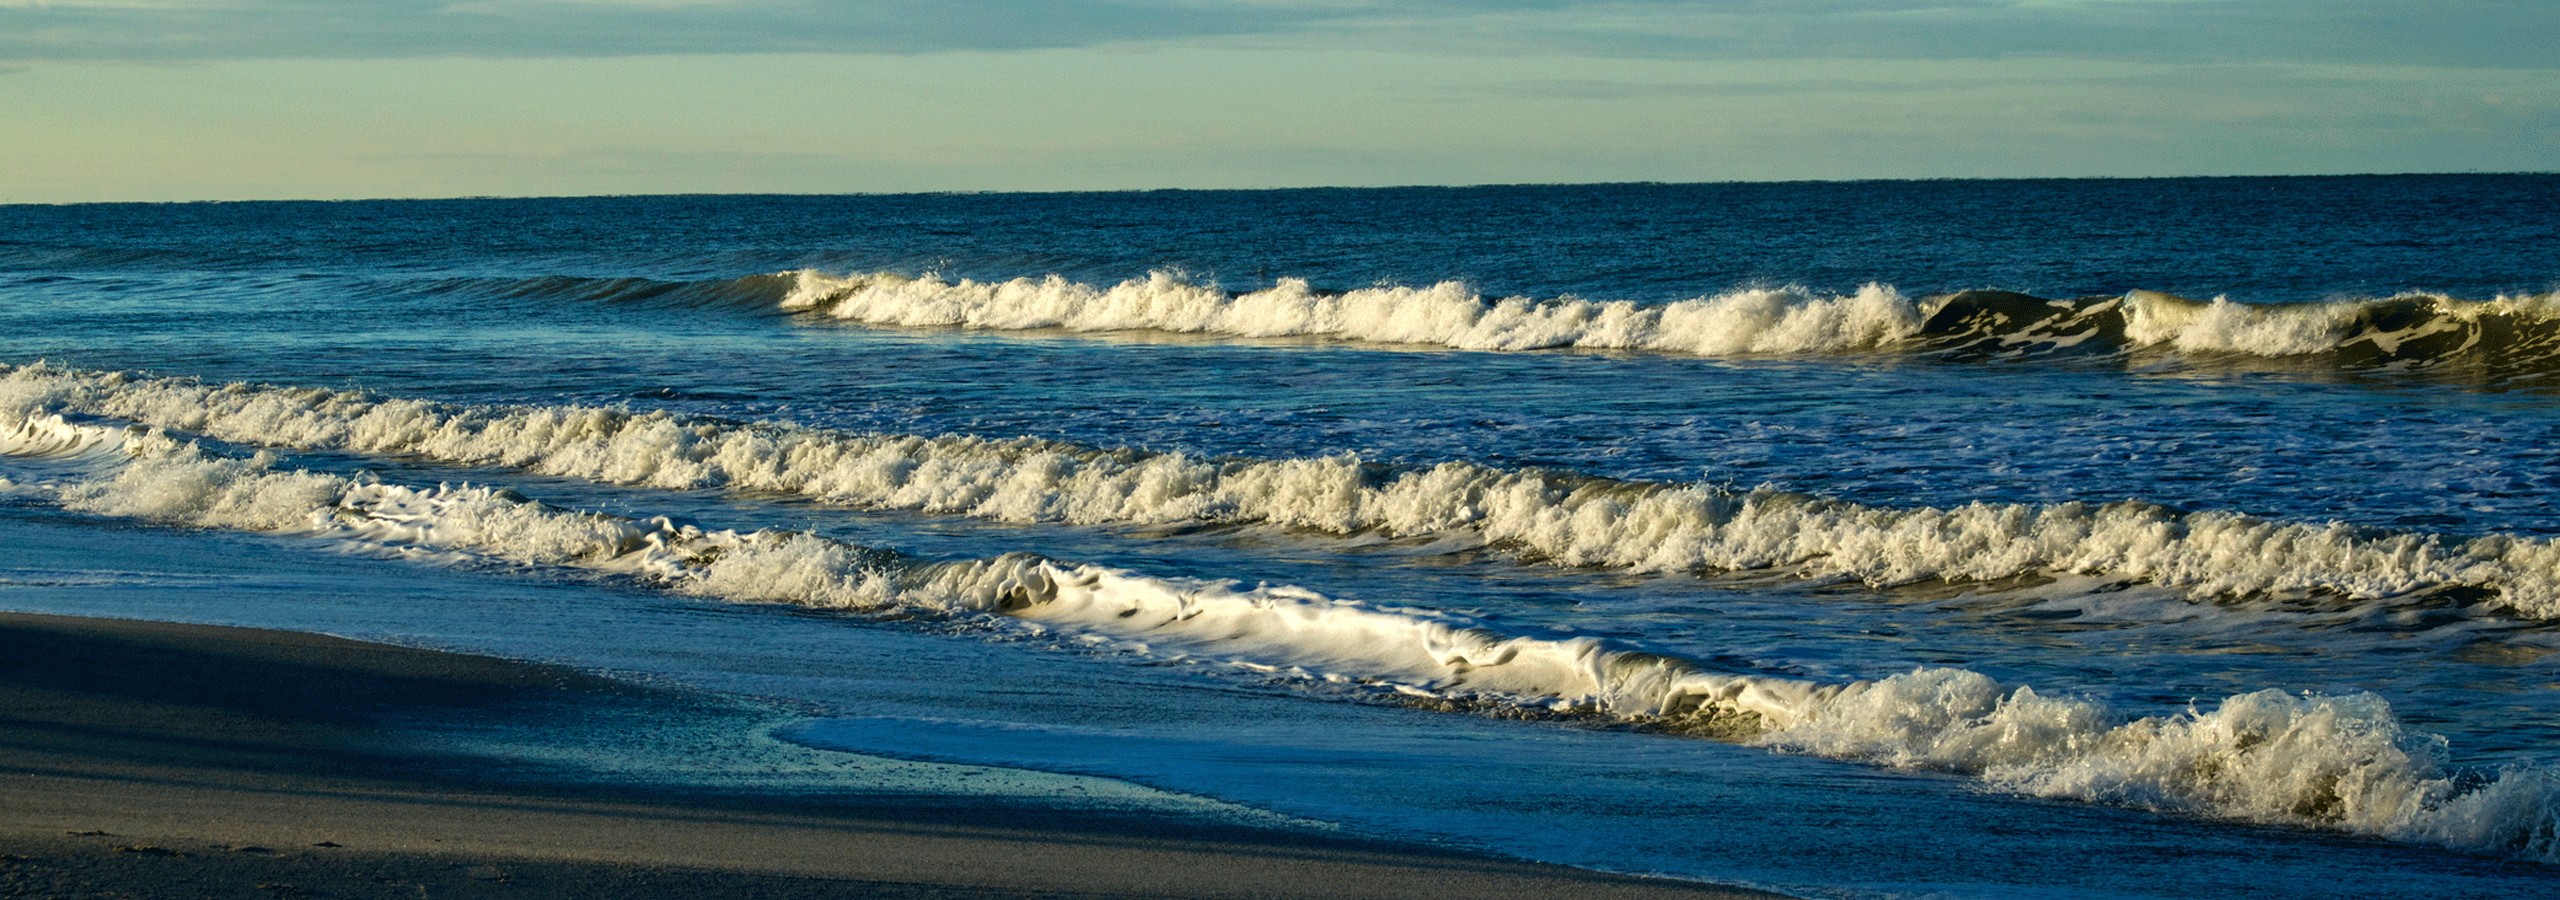 surf waves in gulf of mexico